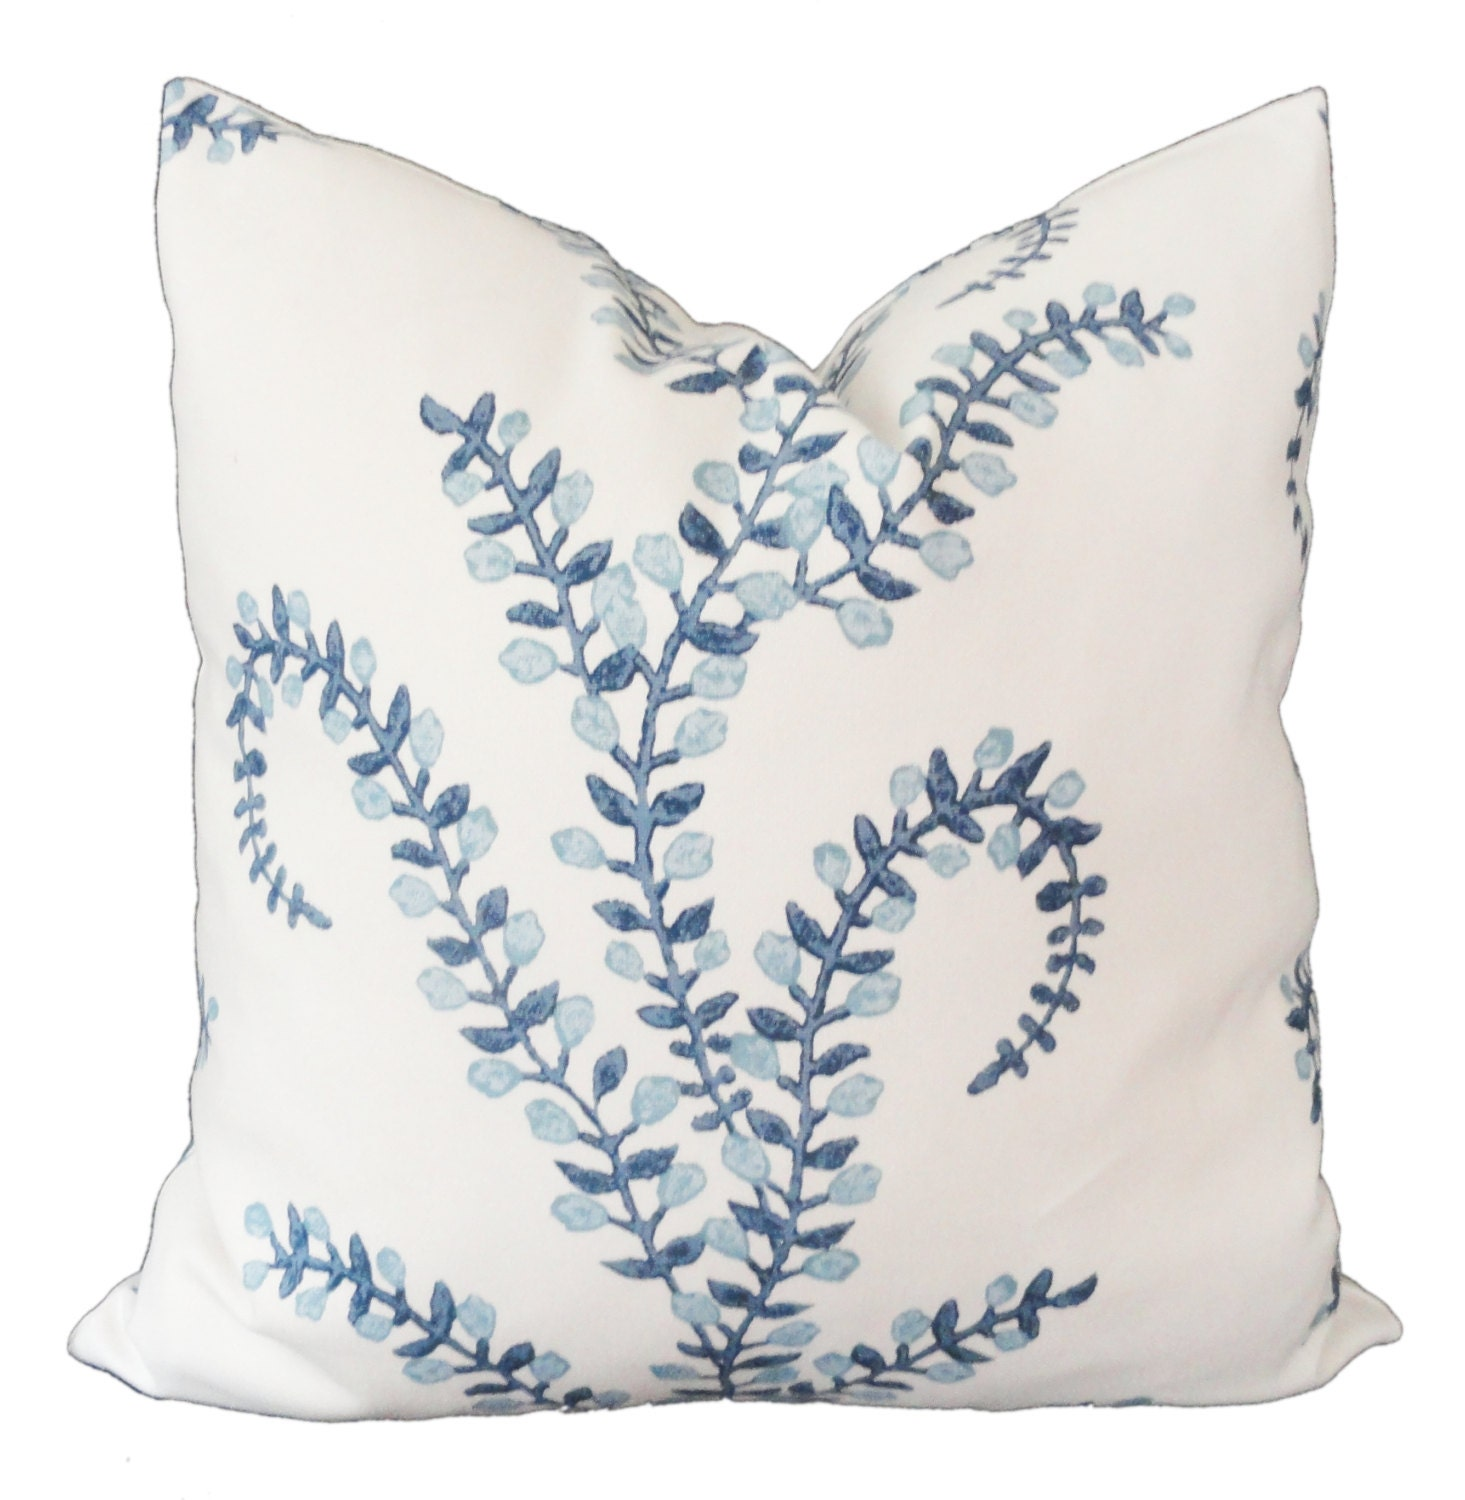 Decorative Pillows Robshaw : Prasana in Bluebell Decorative Pillow Cover Square lumbar or